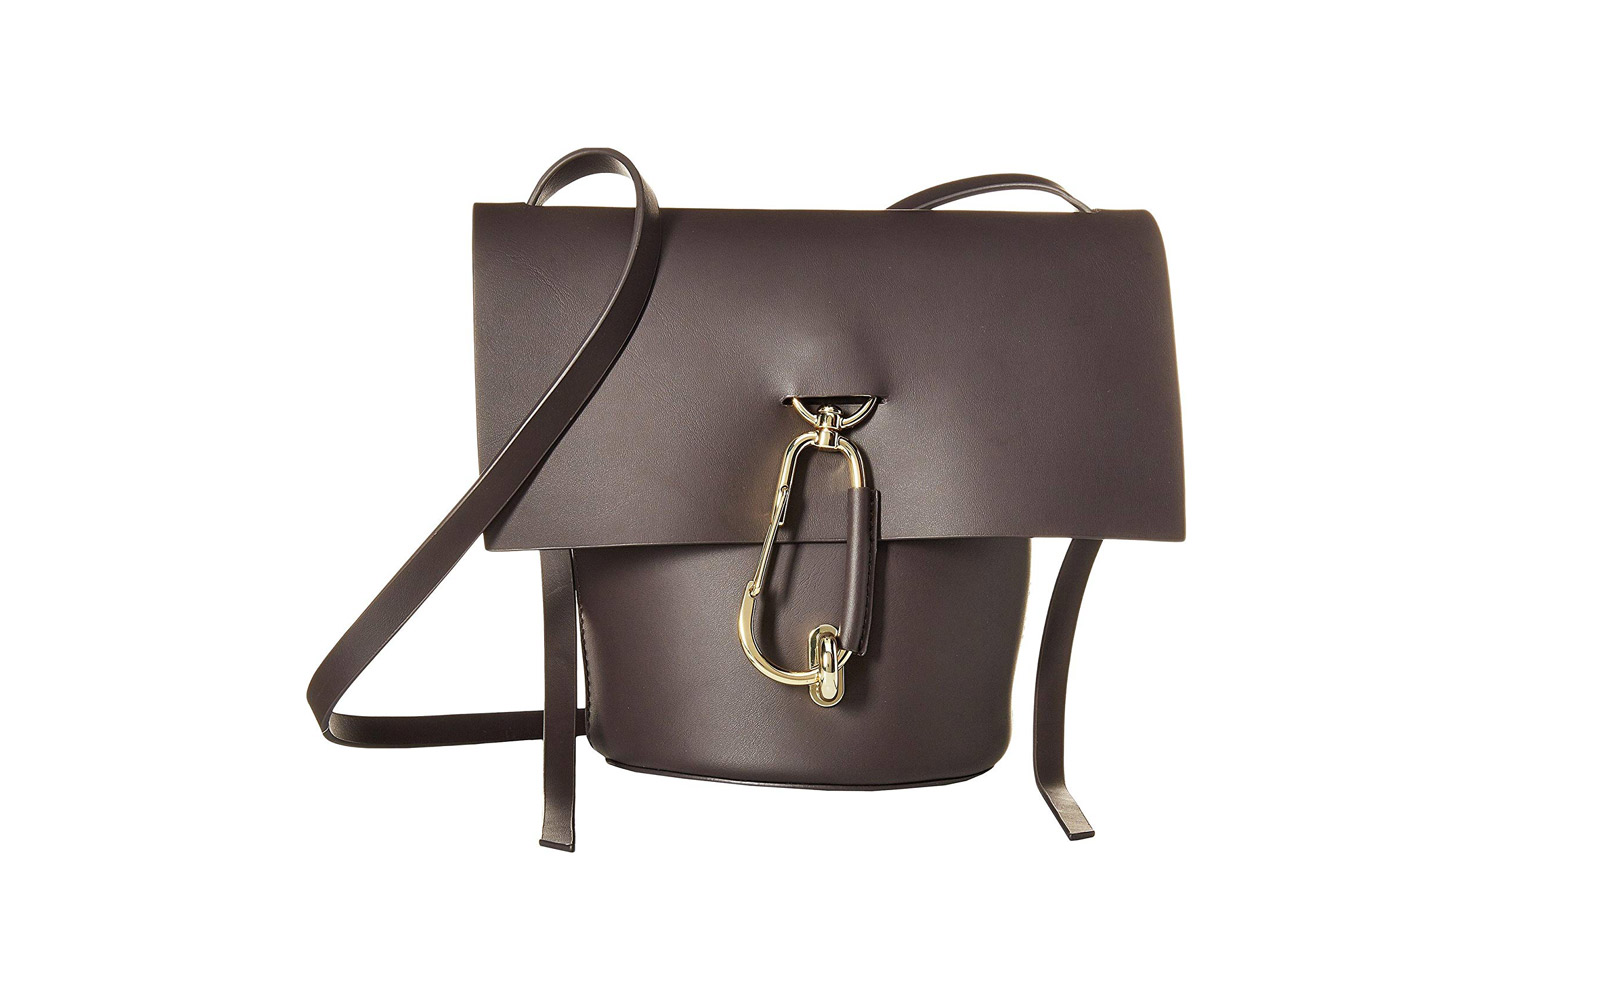 zac zac posen cross-body